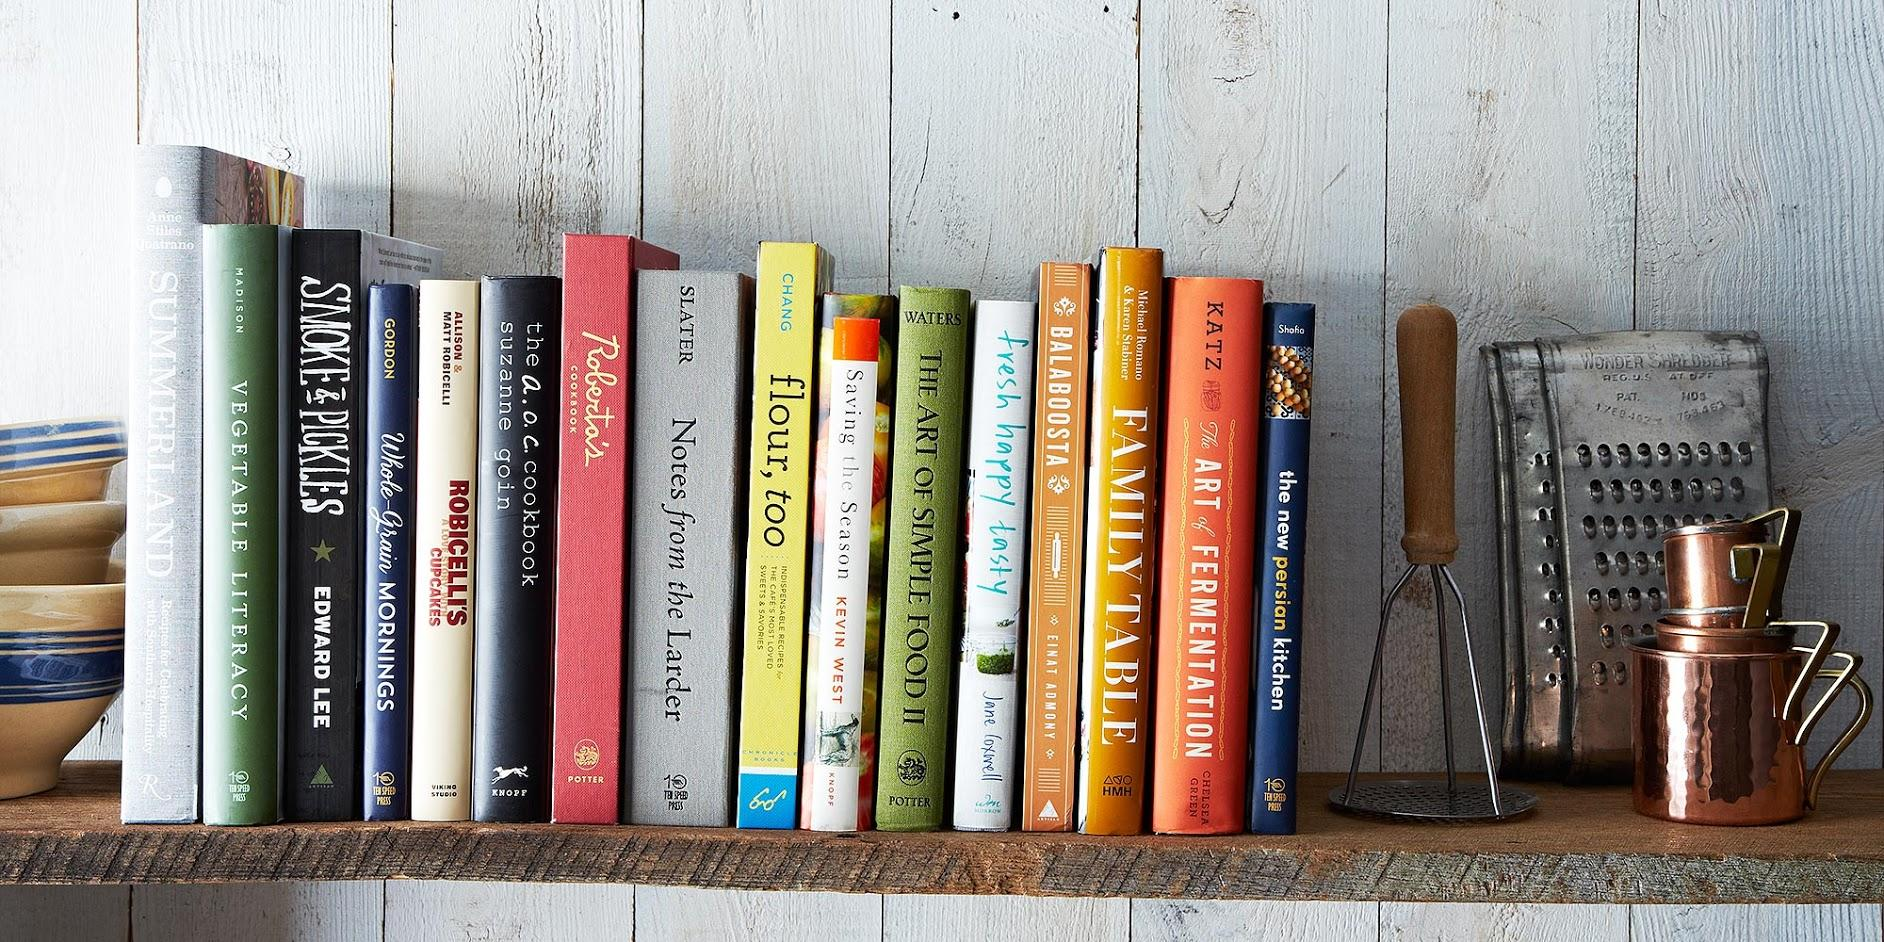 Provisions Collection: The Piglet Cookbooks